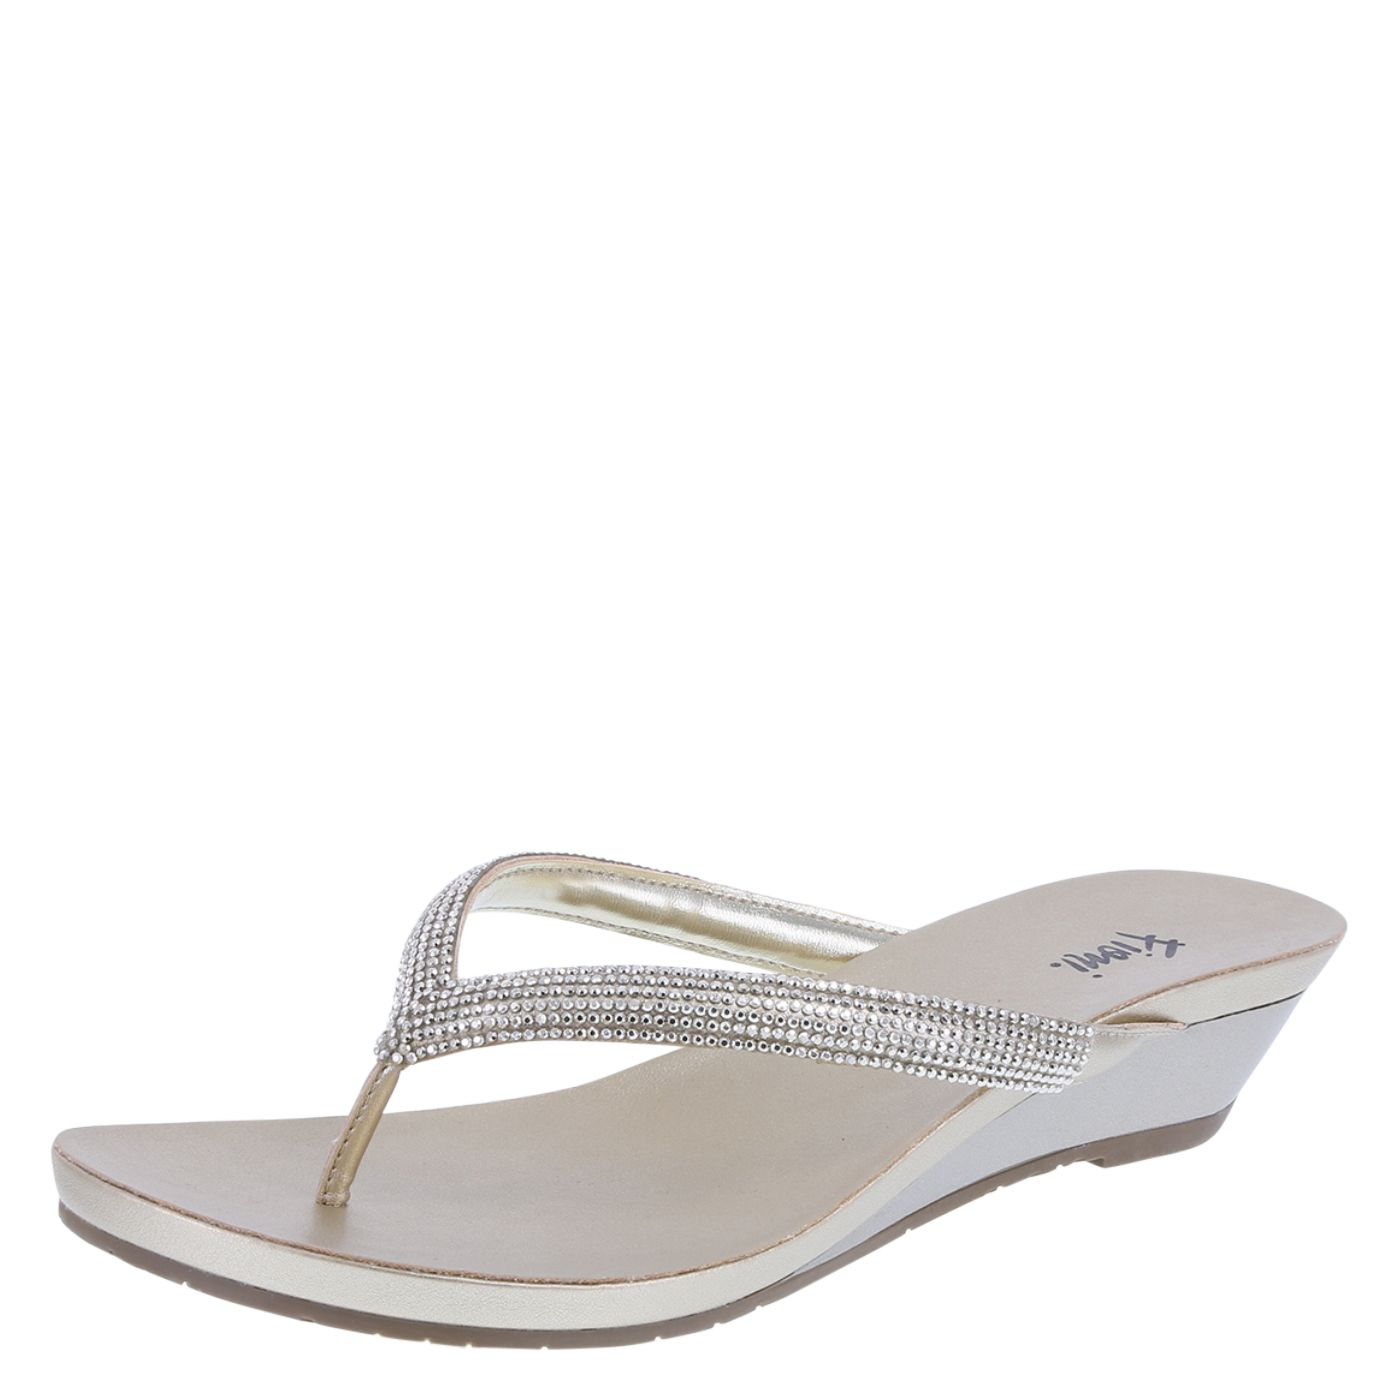 6f1a1e8002 Fancy up your flip flop collection with the Quinn Embellished Wedge from  Fioni! It features a gem-encrusted upper for loads of sparkle, smooth  lining, ...